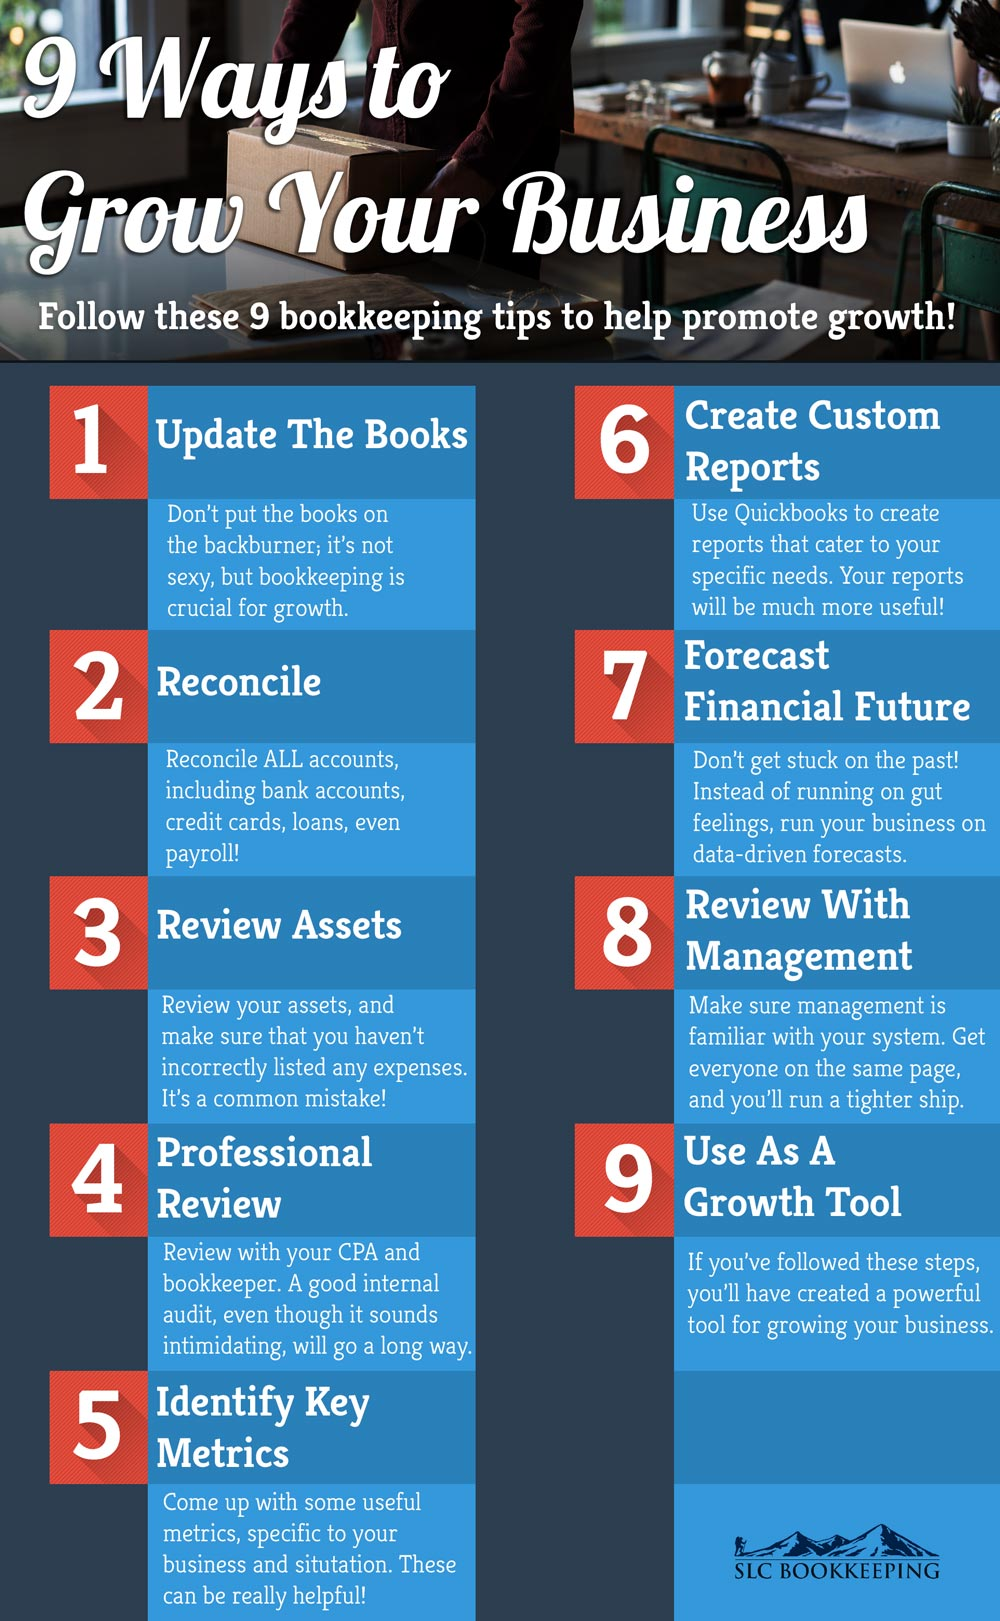 [Infographic] 9 Bookkeeping Tips to Promote Small Business Growth